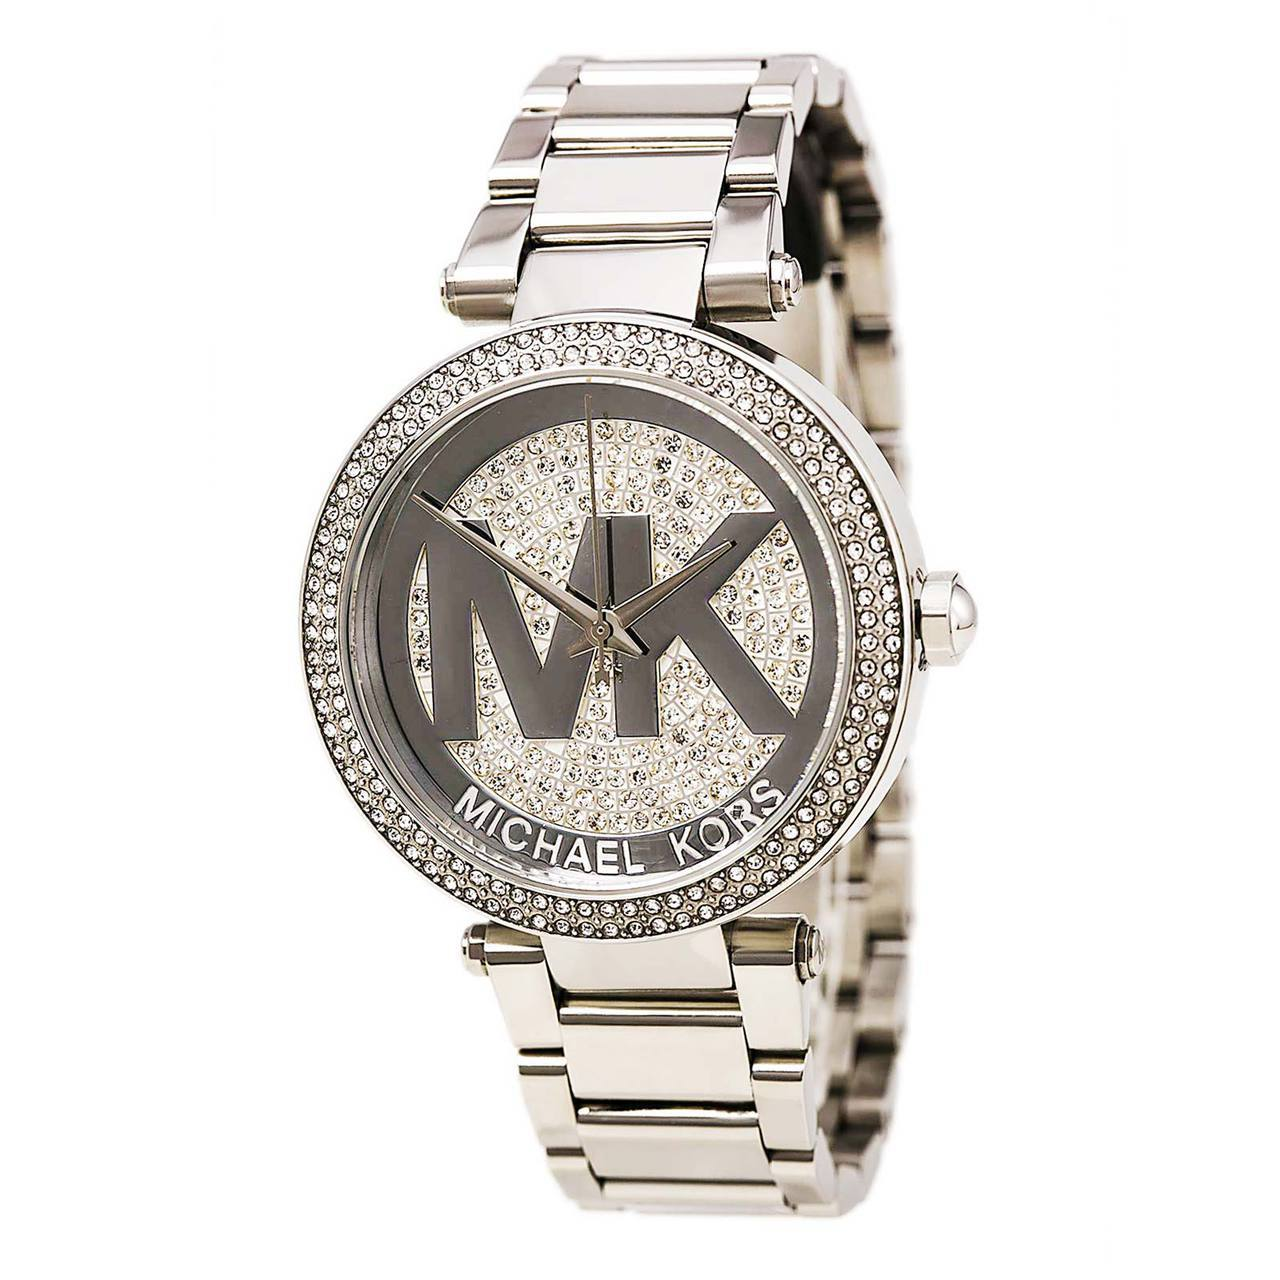 MK5925 ichael Kors Stainless Steel Watch